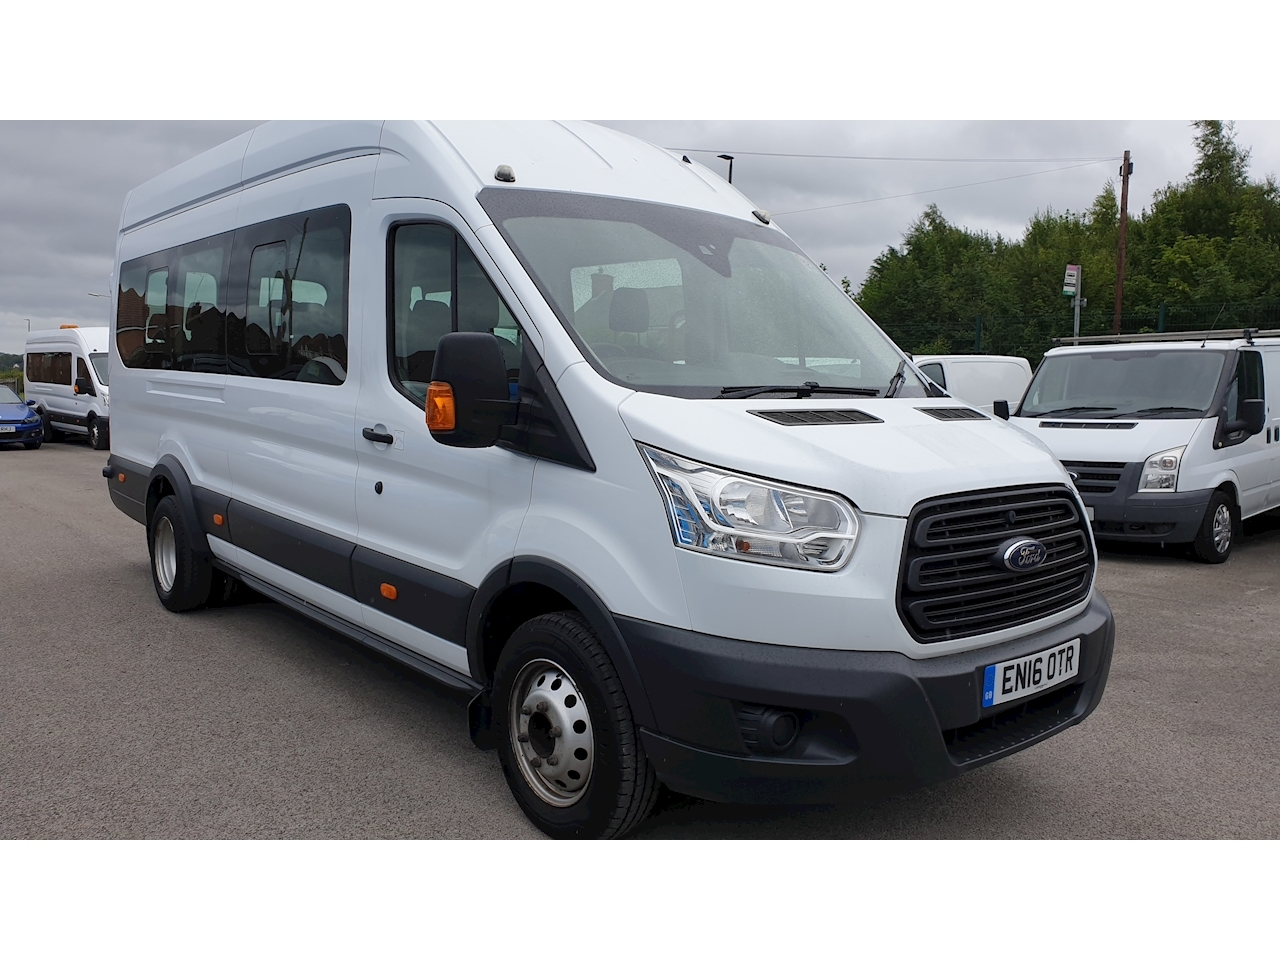 Transit 2.2 TDCi 460 HDT Bus 5dr Diesel Manual L4 H3 (18 Seat) (196 g/km, 123 bhp) Bus 2.2 Manual Diesel